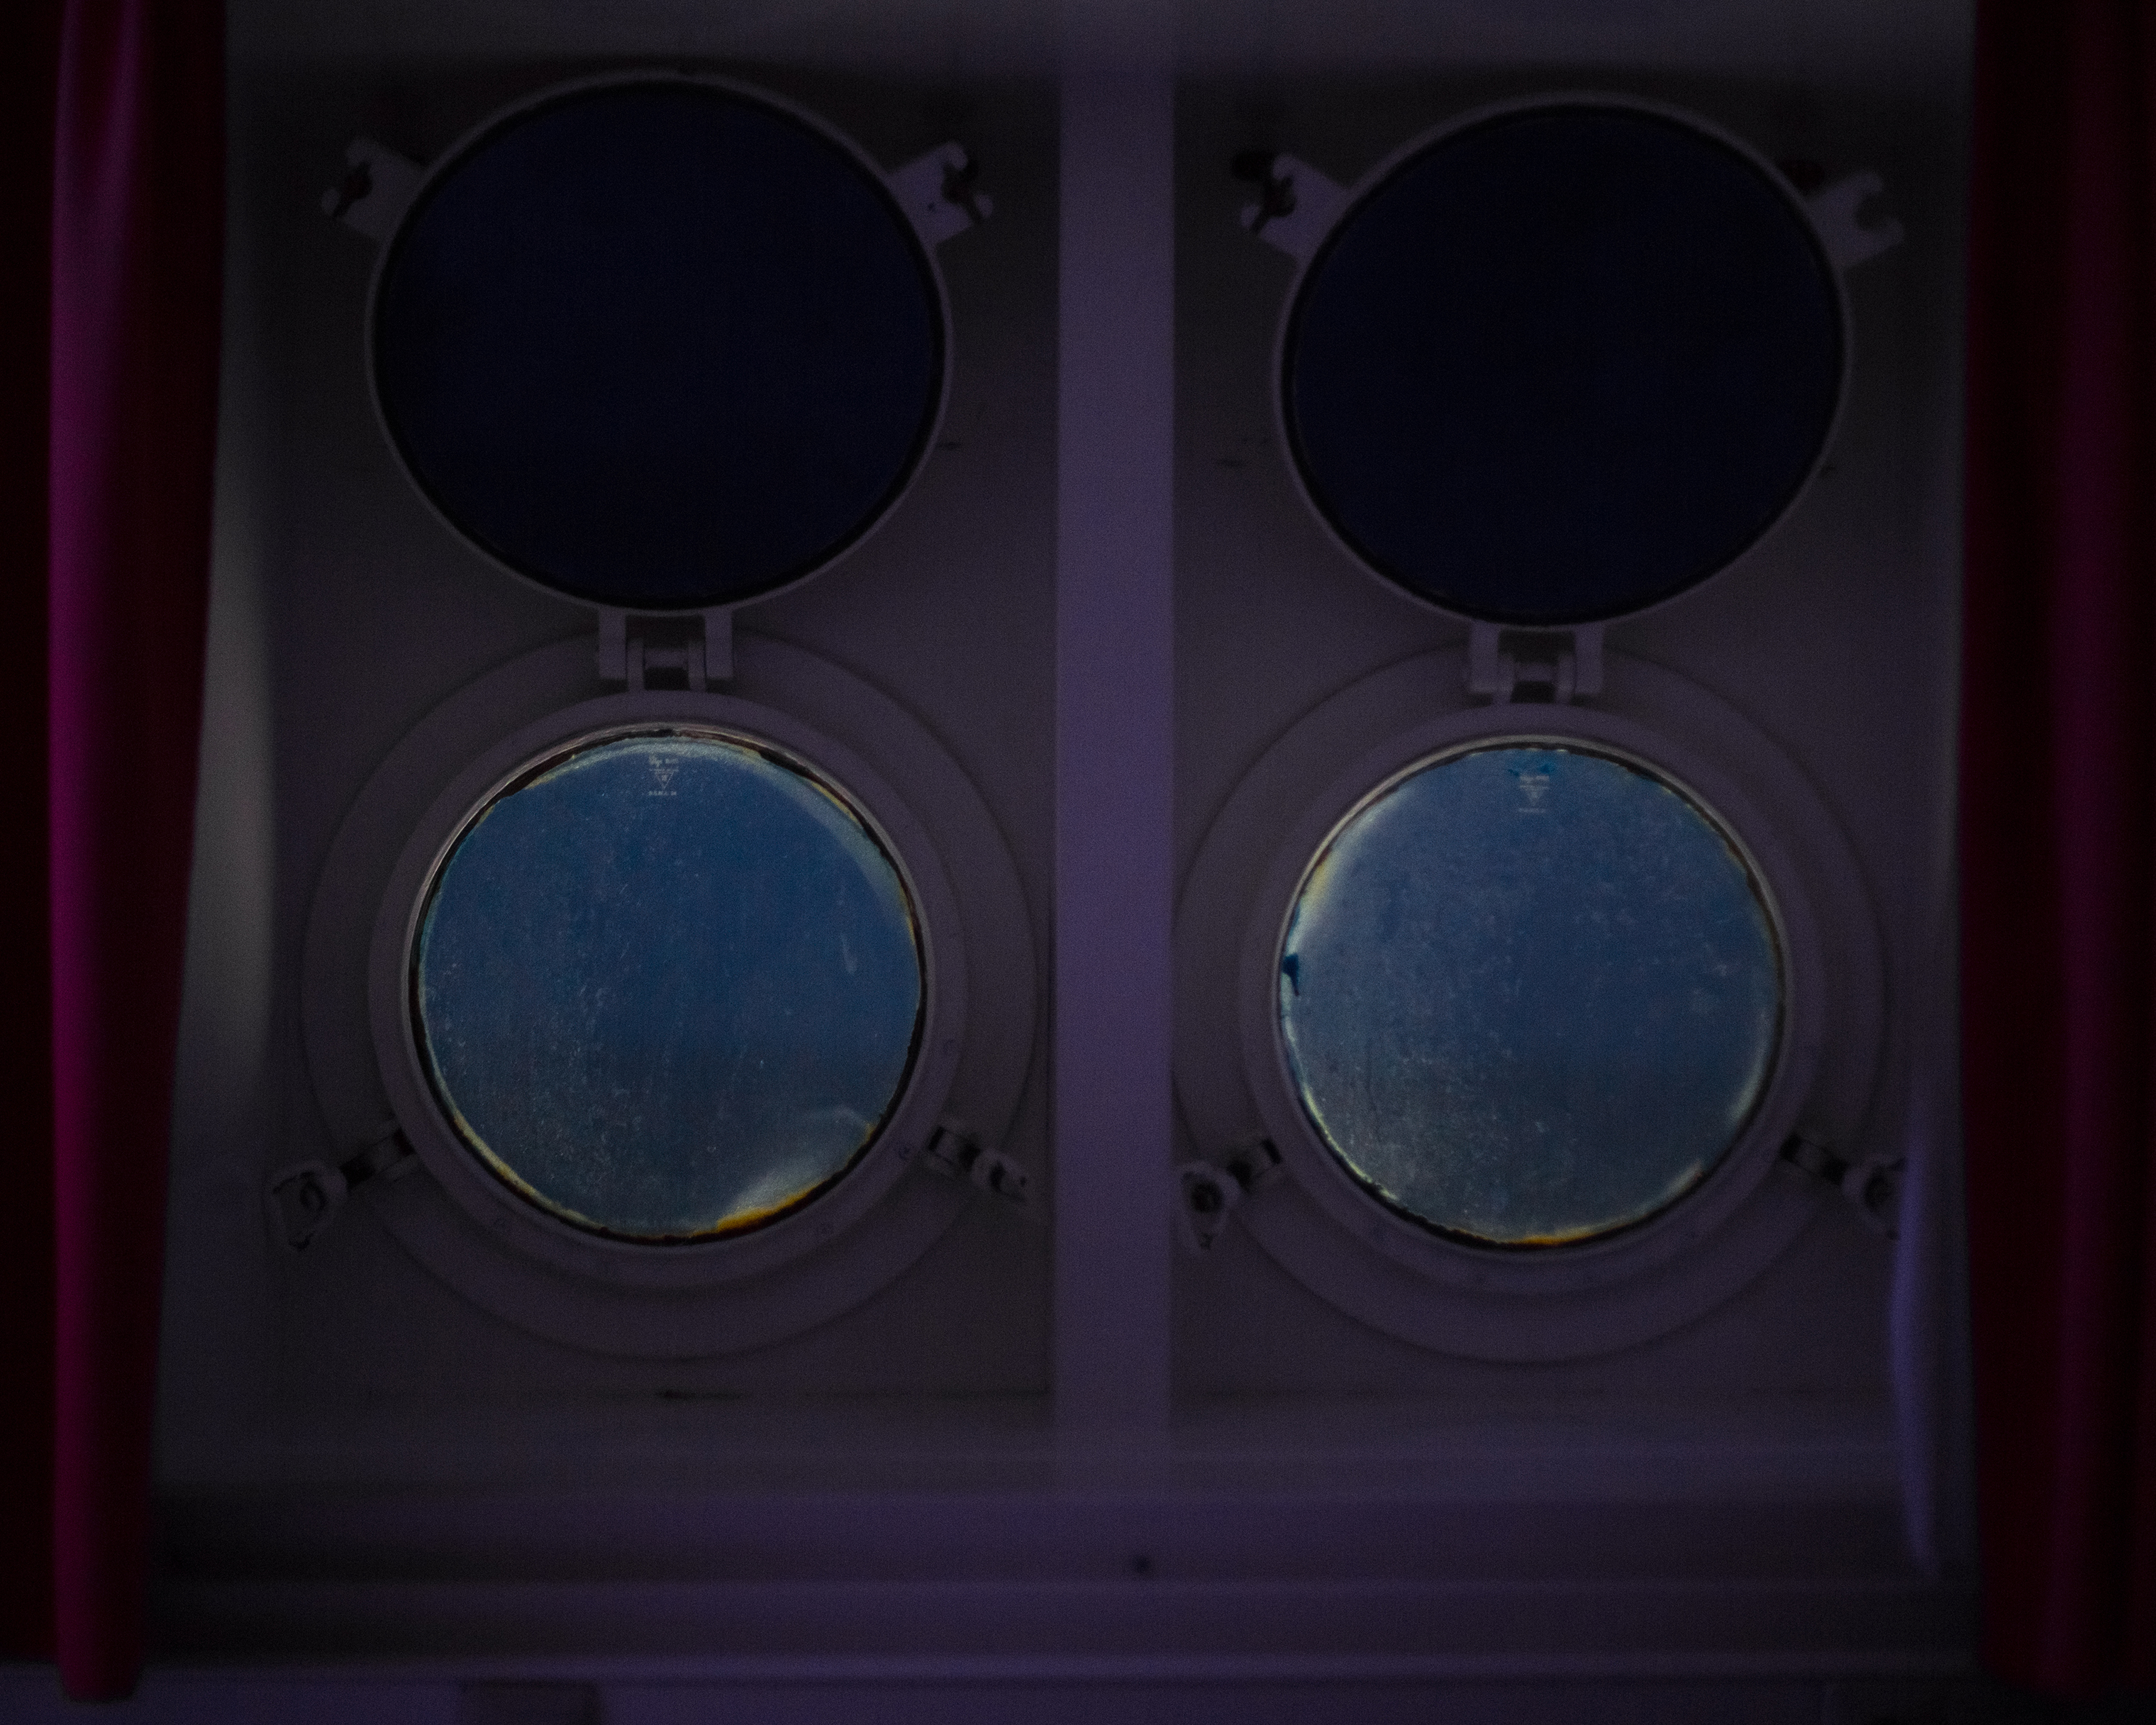 The Drake Passage, the notorious body of water separating Argentina and the Antarctic Peninsula, looms outside the portholes of a cabin. For guides who work long seasons in Antarctica, the turmoil of the Drake is a regular occurrence - a staff member may cross these waters up to 20 times in the course of a single Antarctic summer.